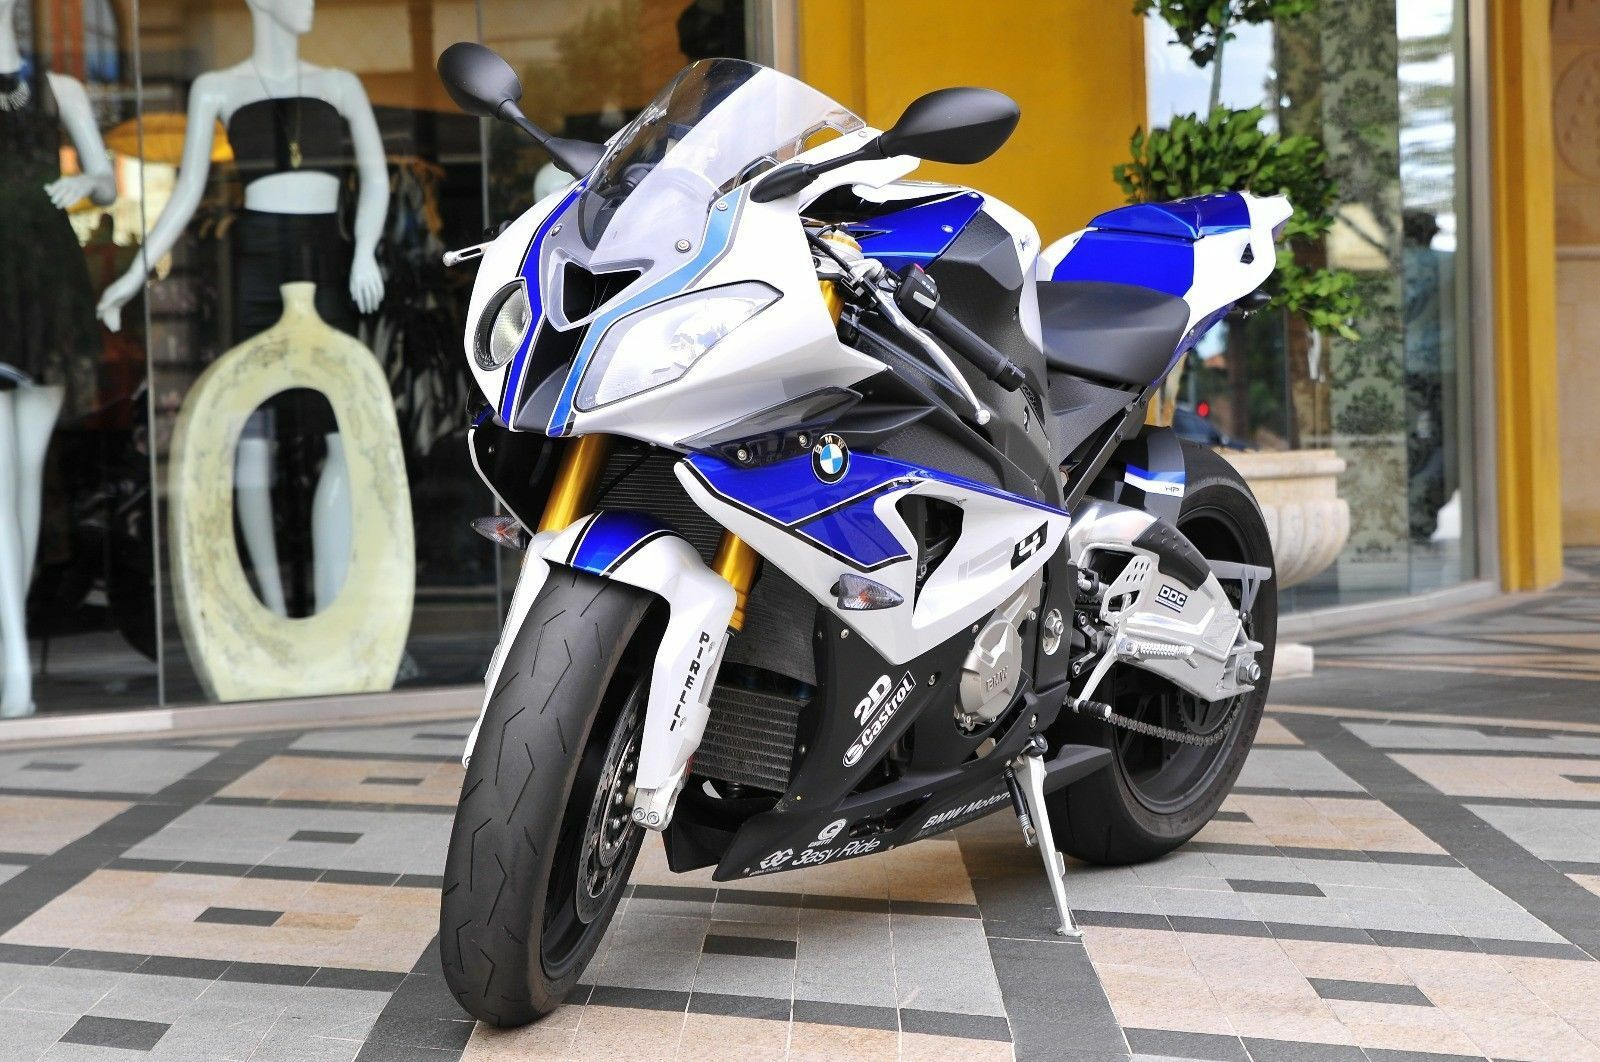 2011 BMW S1000RR  2013 BMW S1000rr *** HP4 *** High performance collectible rare super bike